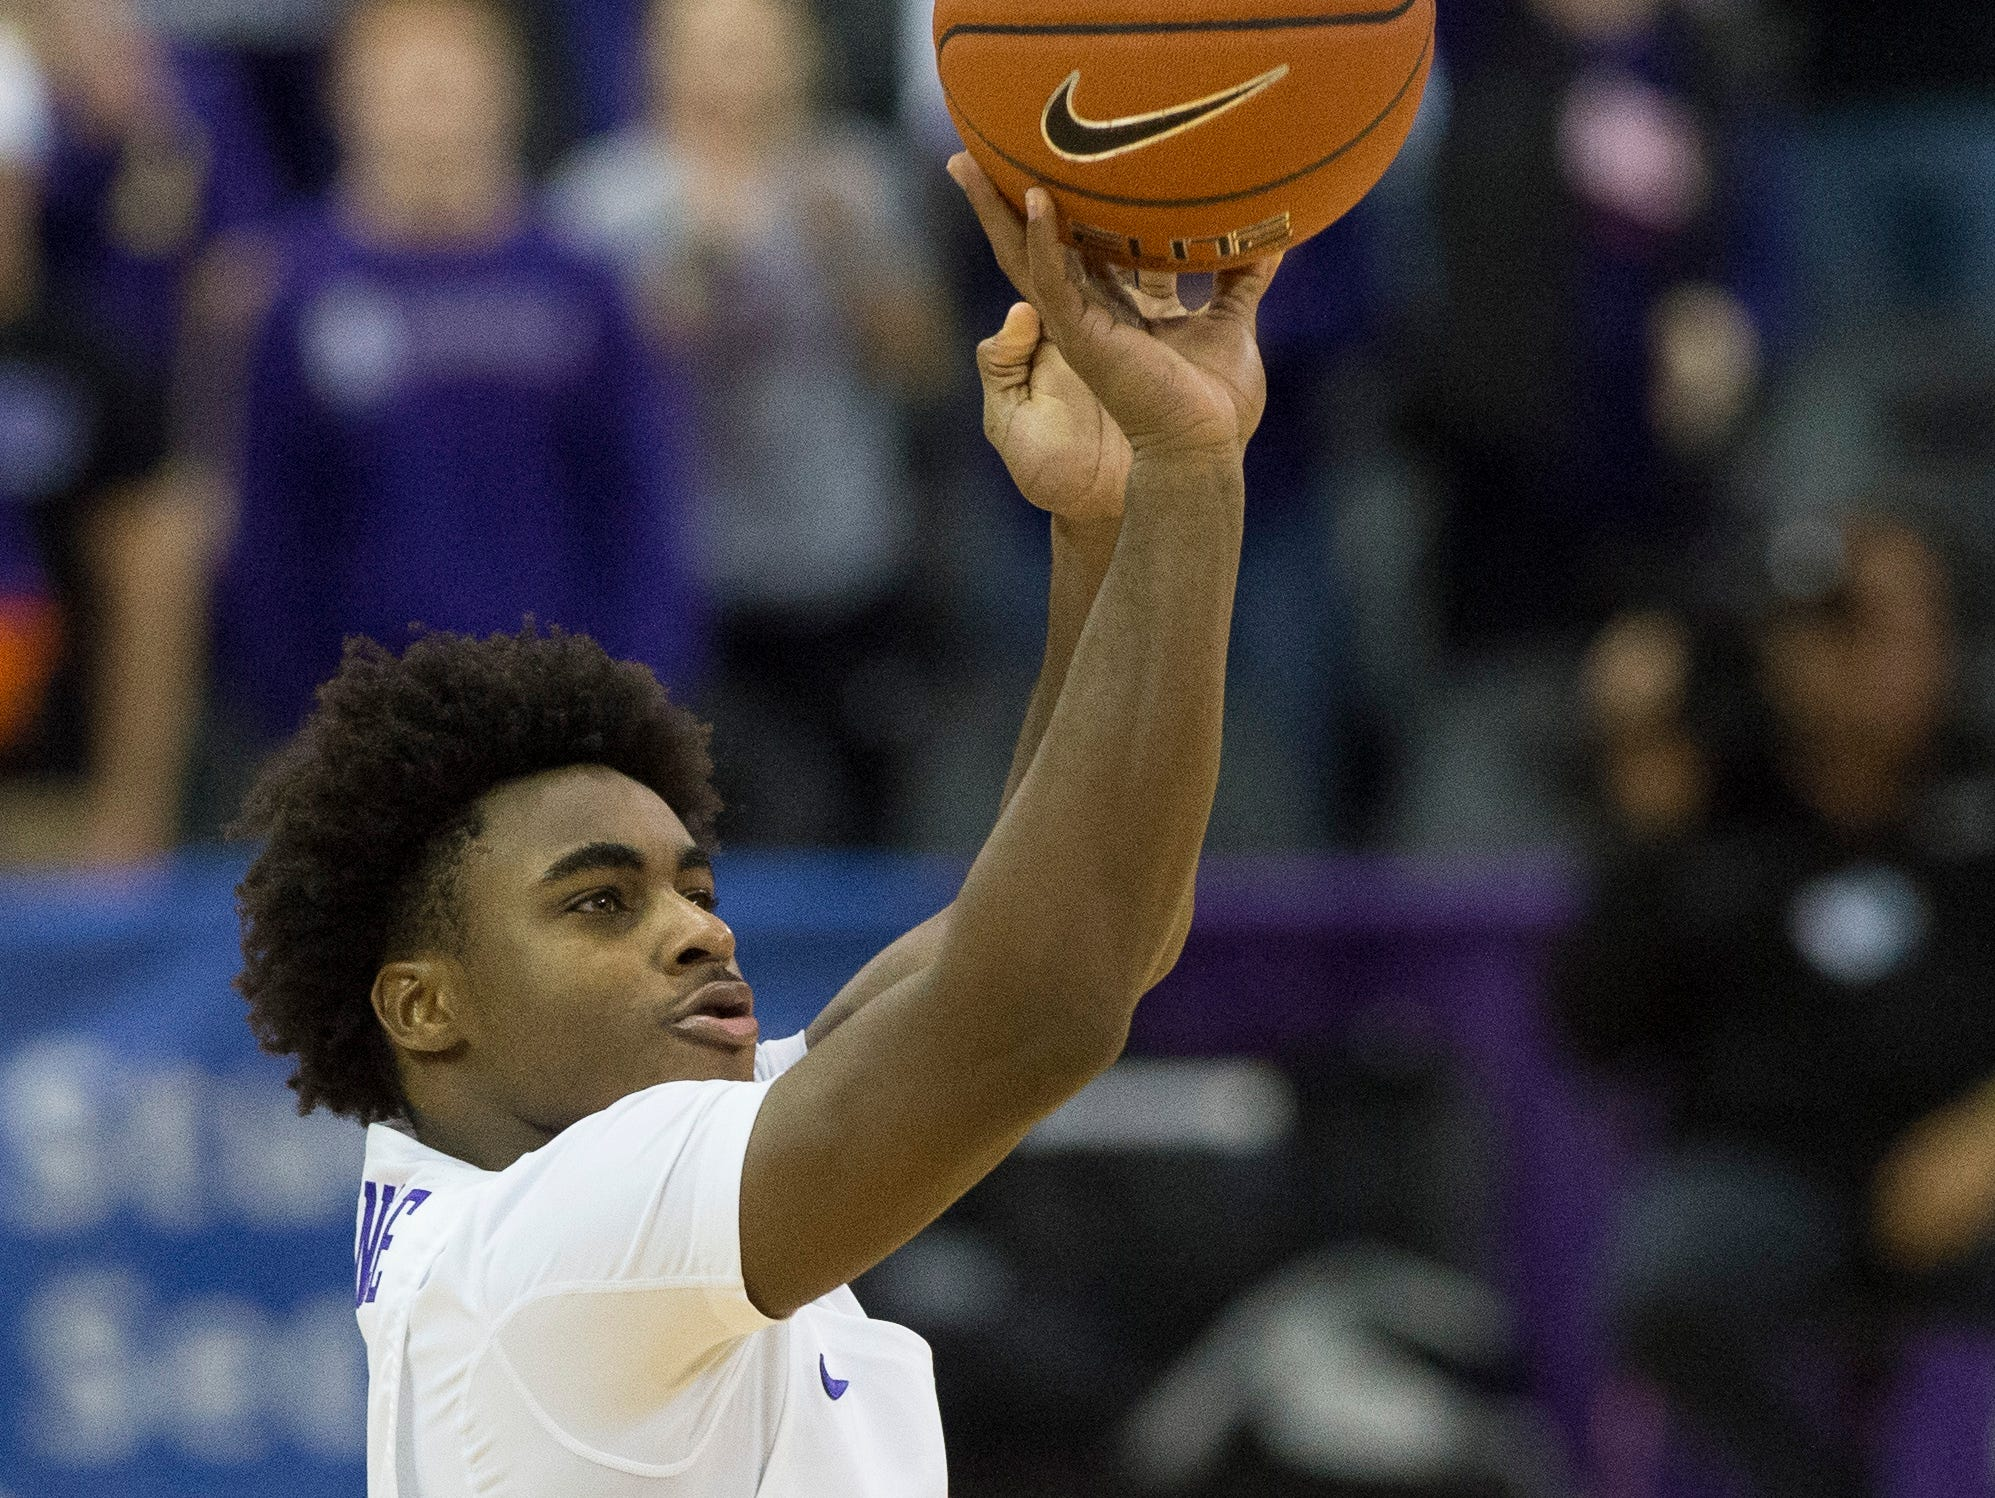 UE's Shamar Givance (5) takes a shot during the UE vs Wyoming game at the Ford Center Wednesday, Nov. 28, 2018. UE won 86-76.